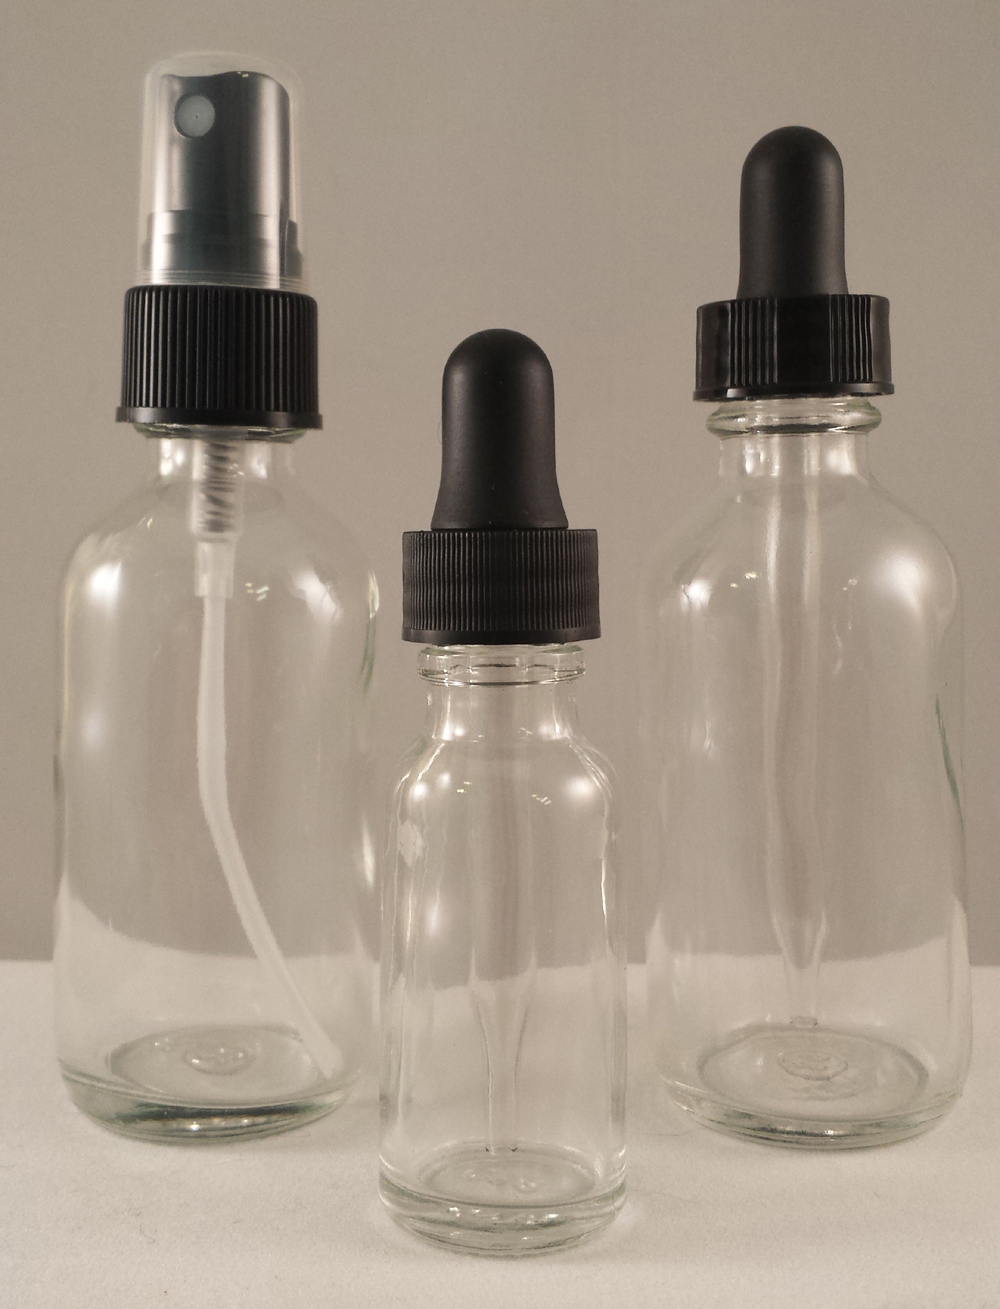 cologne bottles cropped.jpg